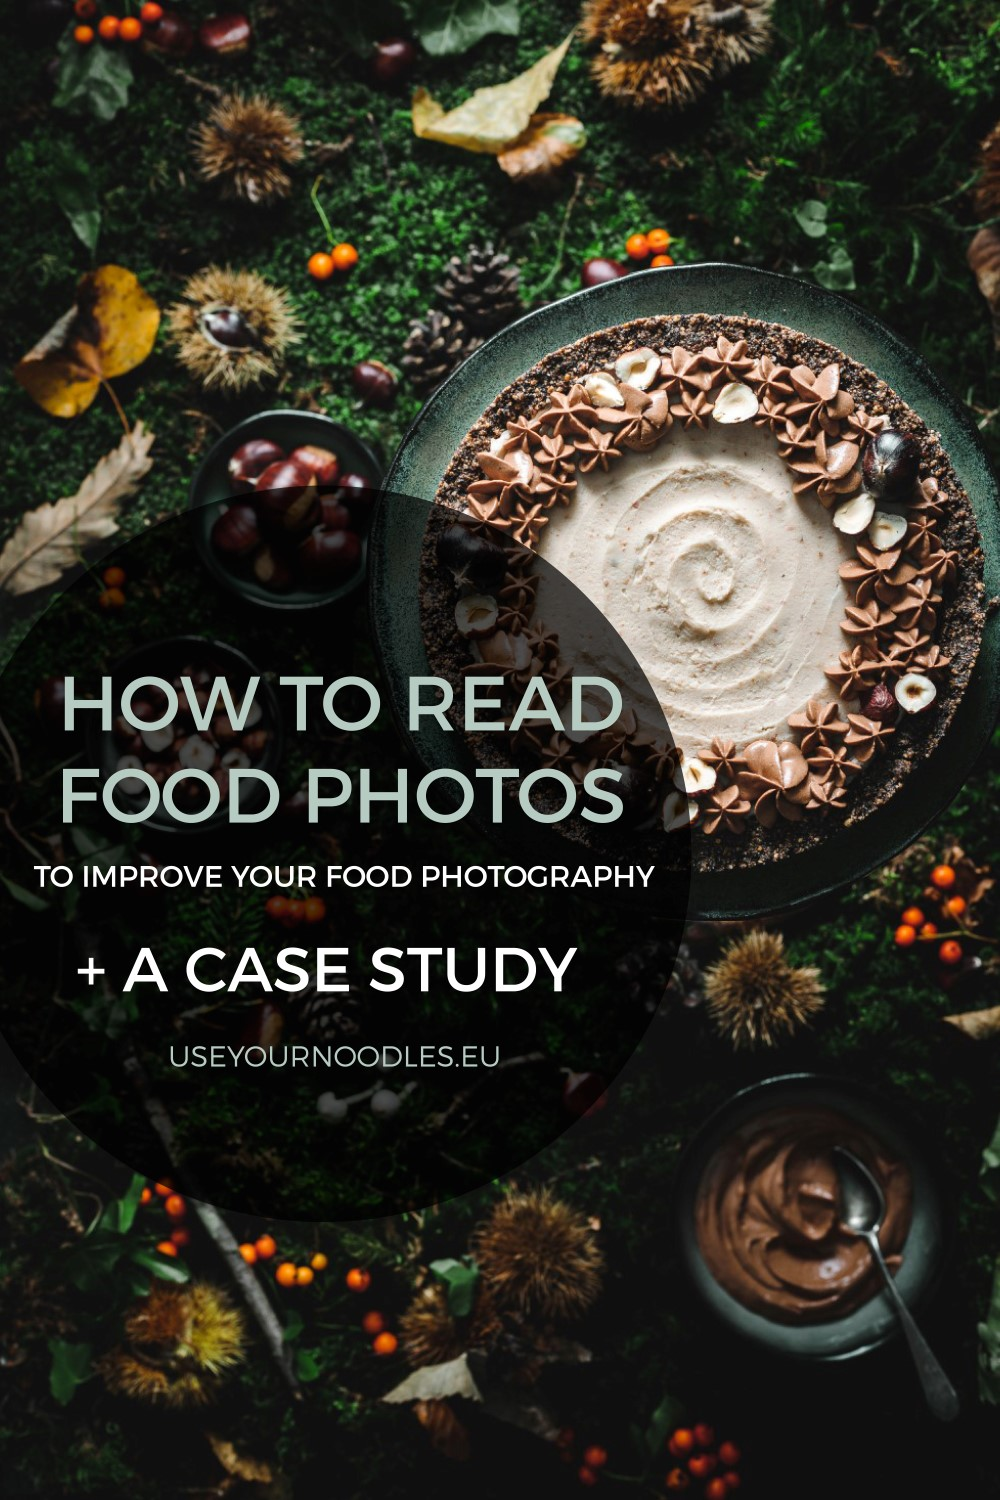 a photo of a chestnut pie on moss for arcticle How to read photos so you can improve your food photography by Anja Burgar from Use Your Noodles blog